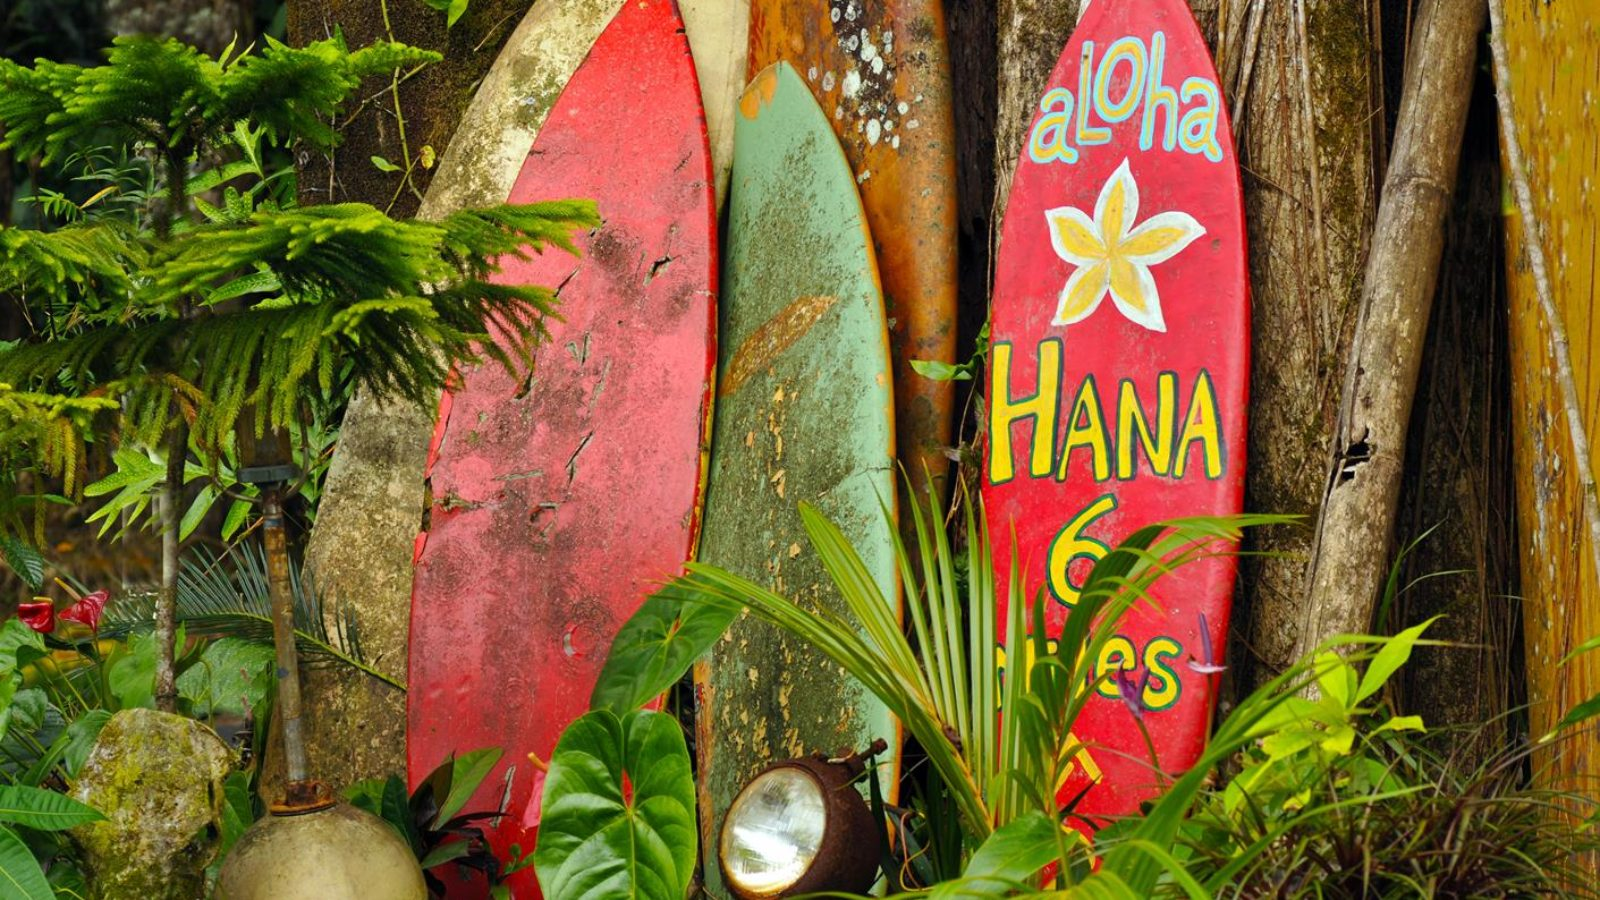 hawai_tablas_surf_hawai_estados_unidos_america